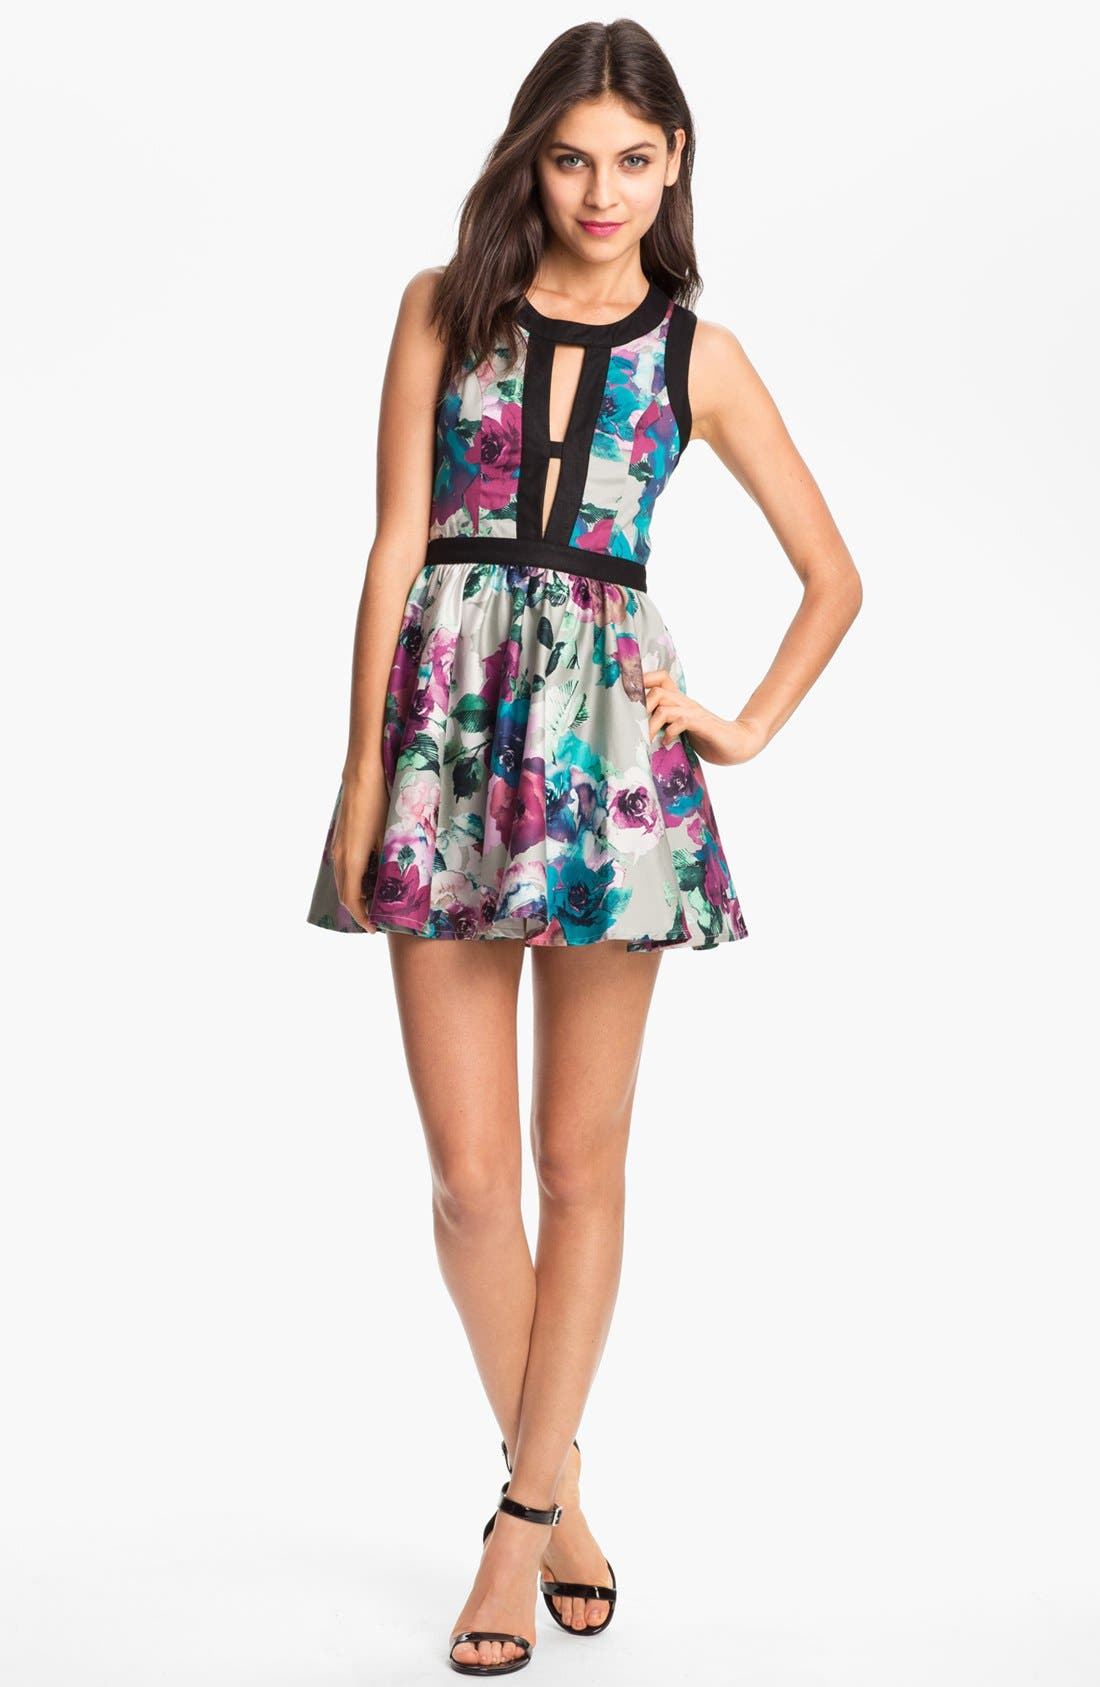 Alternate Image 1 Selected - Keepsake the Label 'Day Dream' Print Fit & Flare Dress